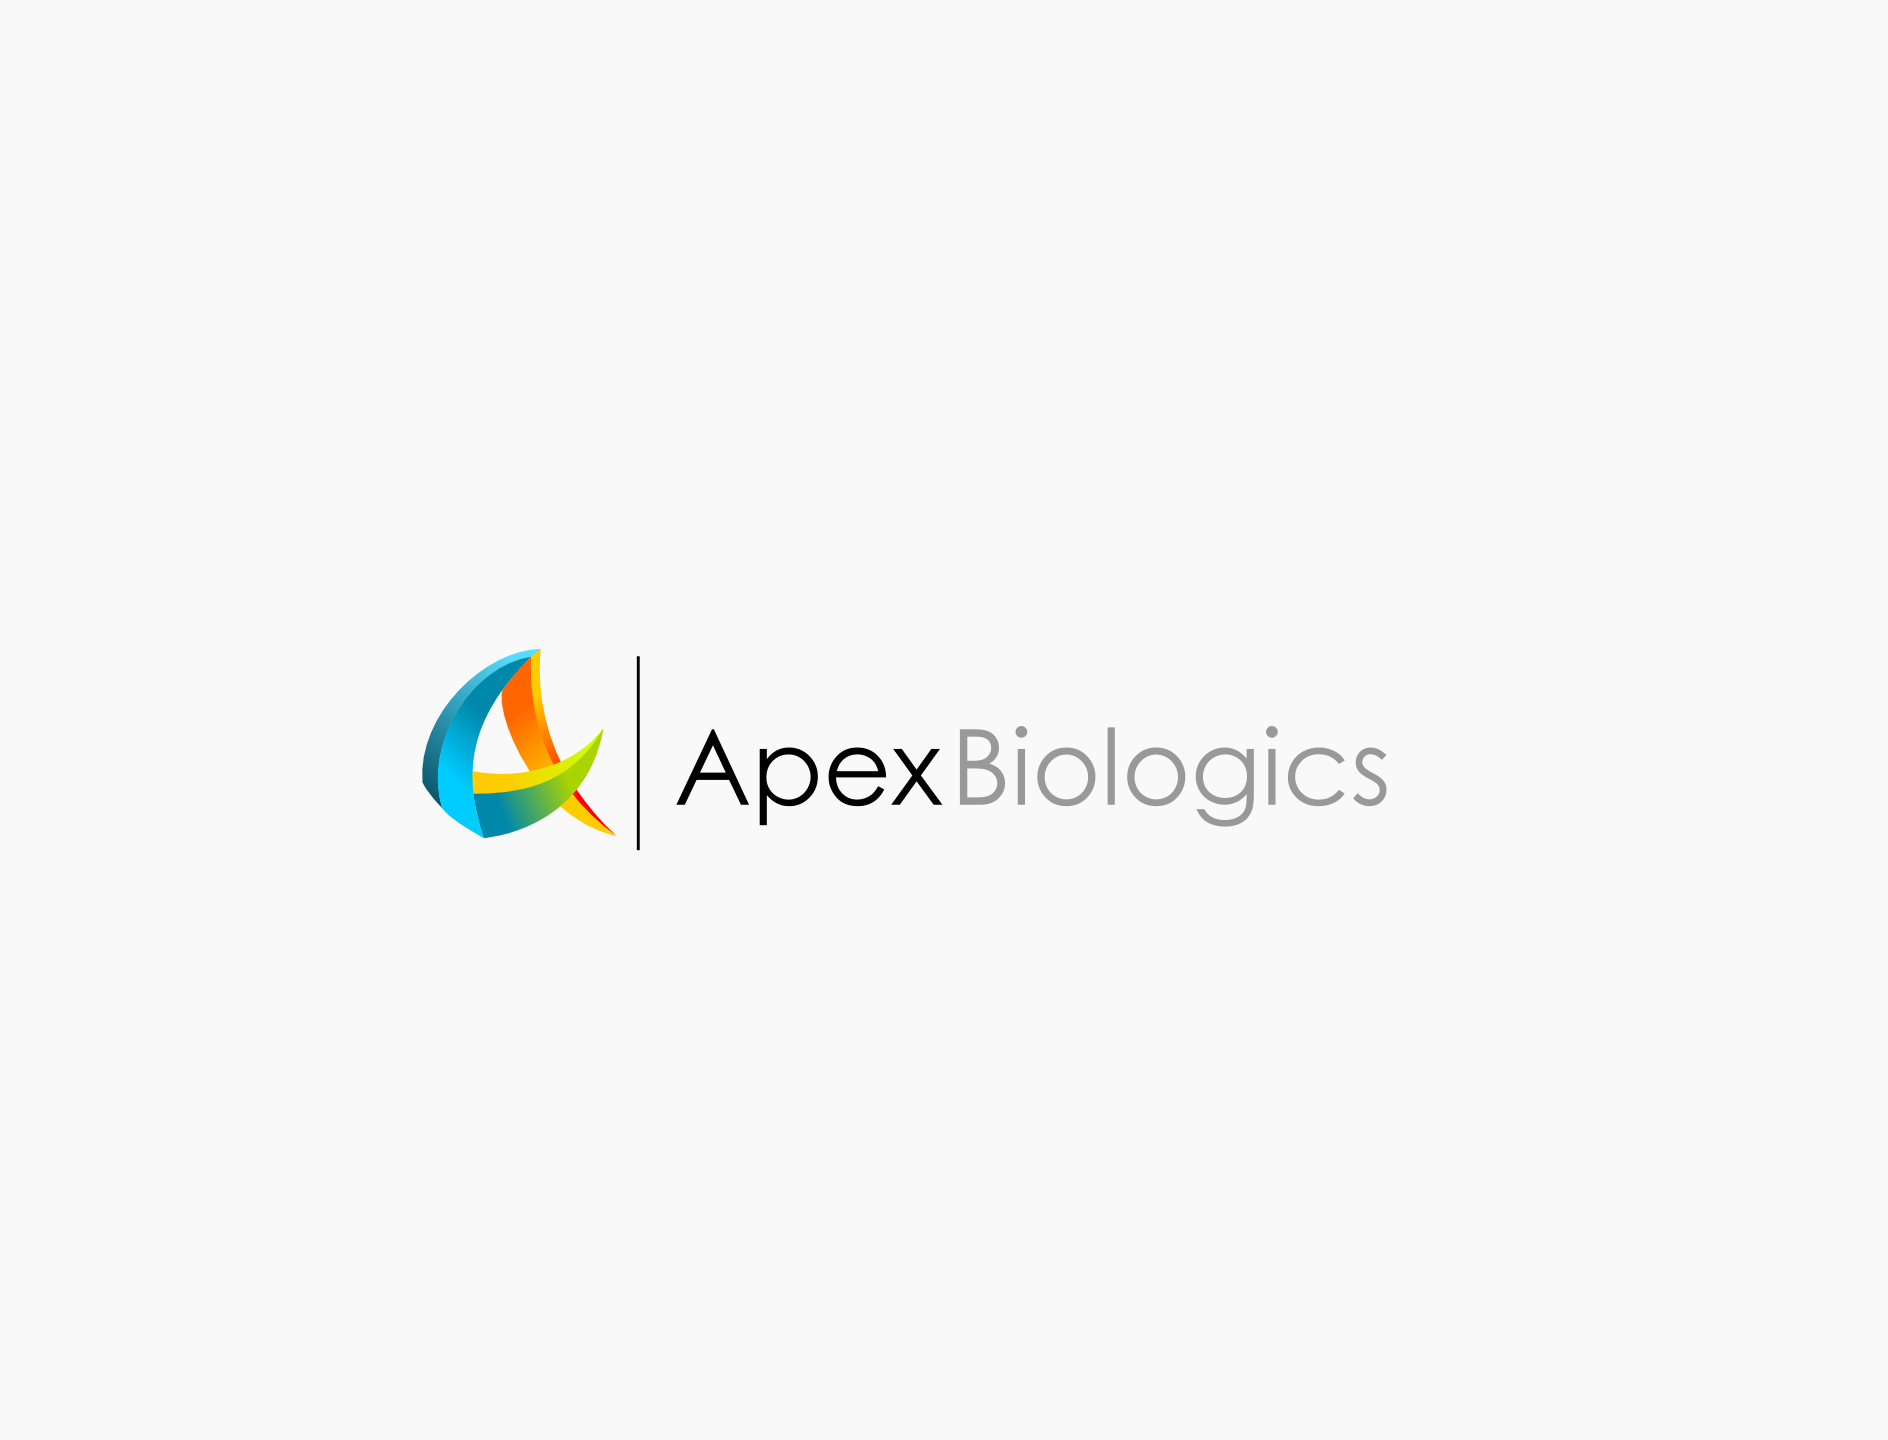 Looking for a timeless illustration defining Apex to be used in both the medical and patient settings